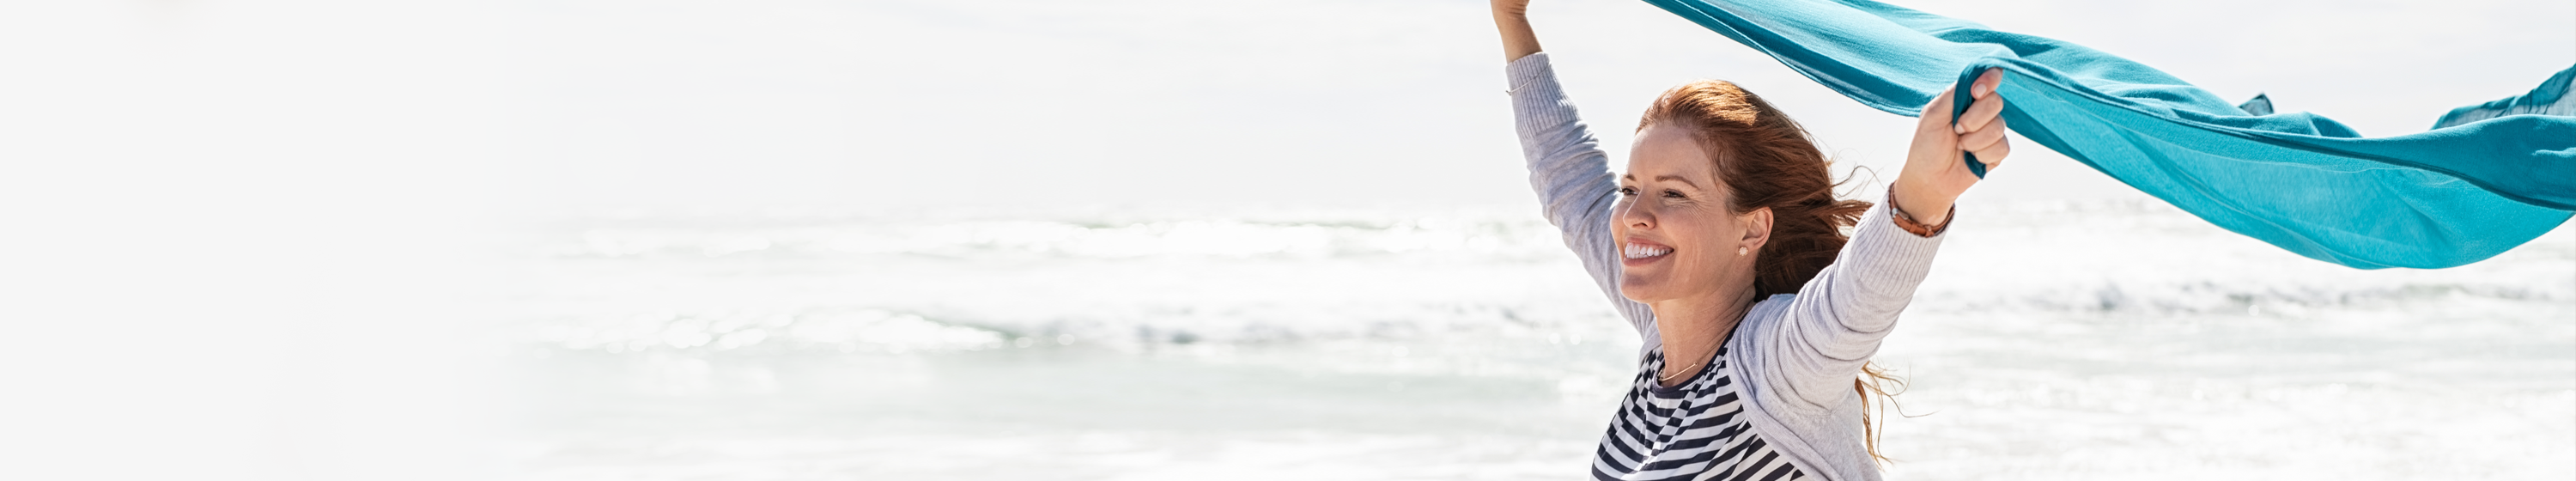 Lady running on the beach with hands in the air